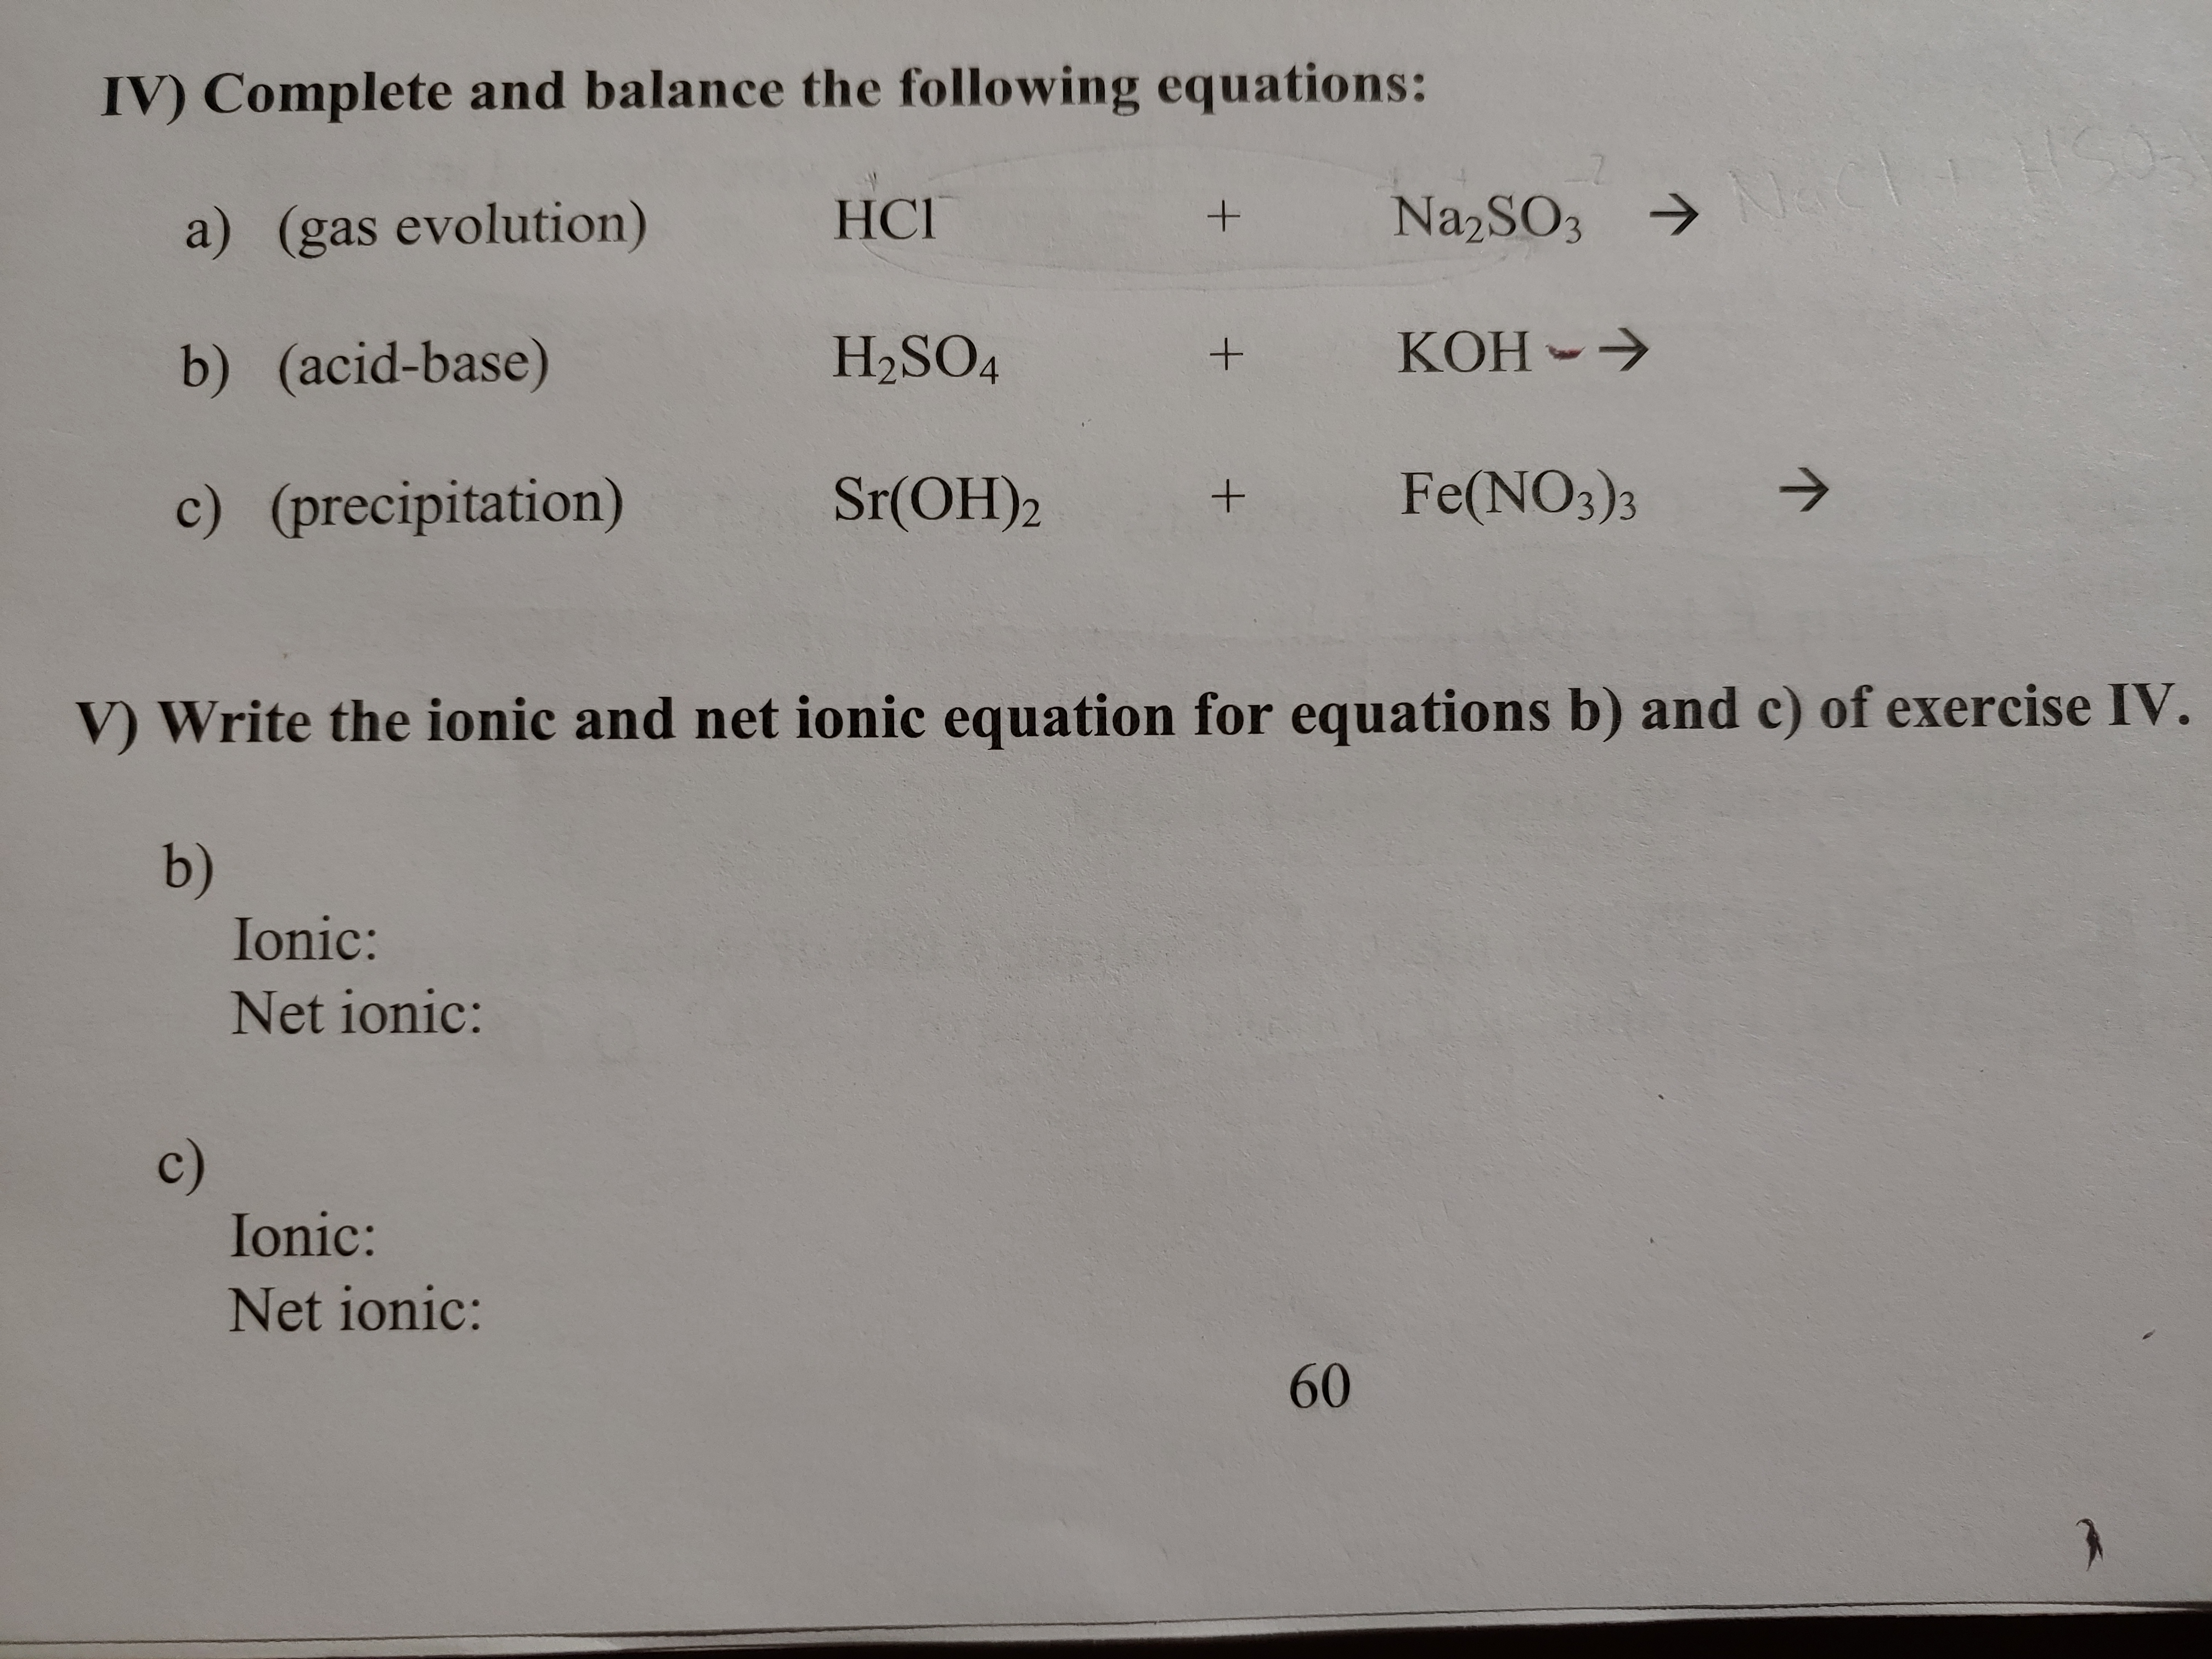 IV) Complete and balance the following equations: N1aC Na2SO3 HСГ a) (gas evolution) KOH H2SO4 b) (acid-base) Fe(NO3)3 Sr(OH)2 c) (precipitation) V Write the ionic and net ionic equation for equations b) and c) of exercise IV. b) Ionic: Net ionic: с) Ionic: Net ionic: 60 + +